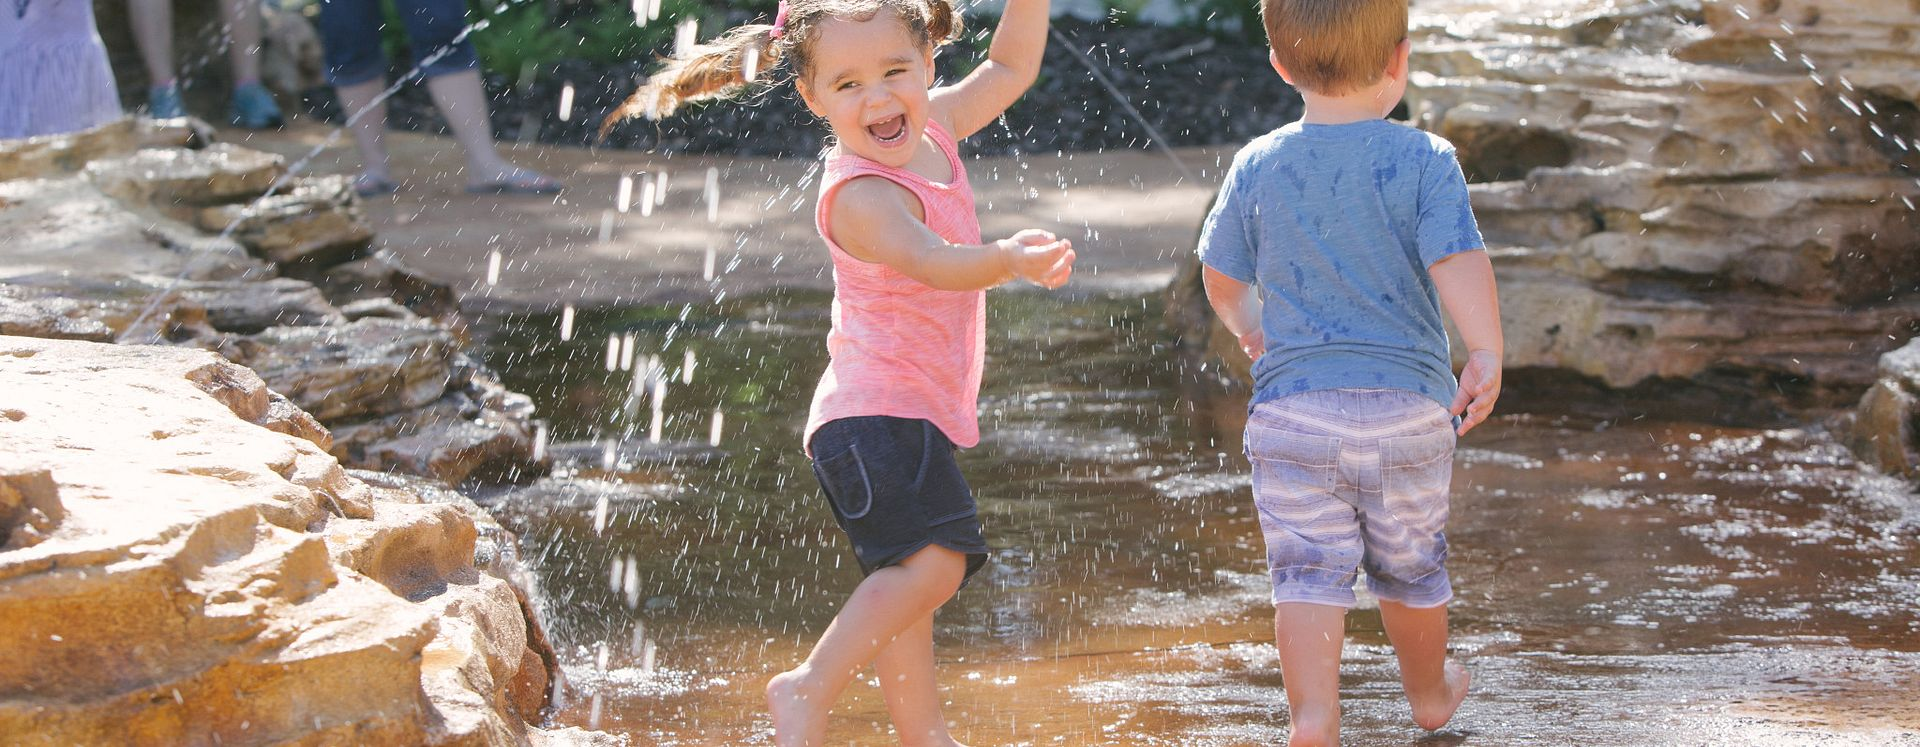 Things to do With Toddlers in Orlando